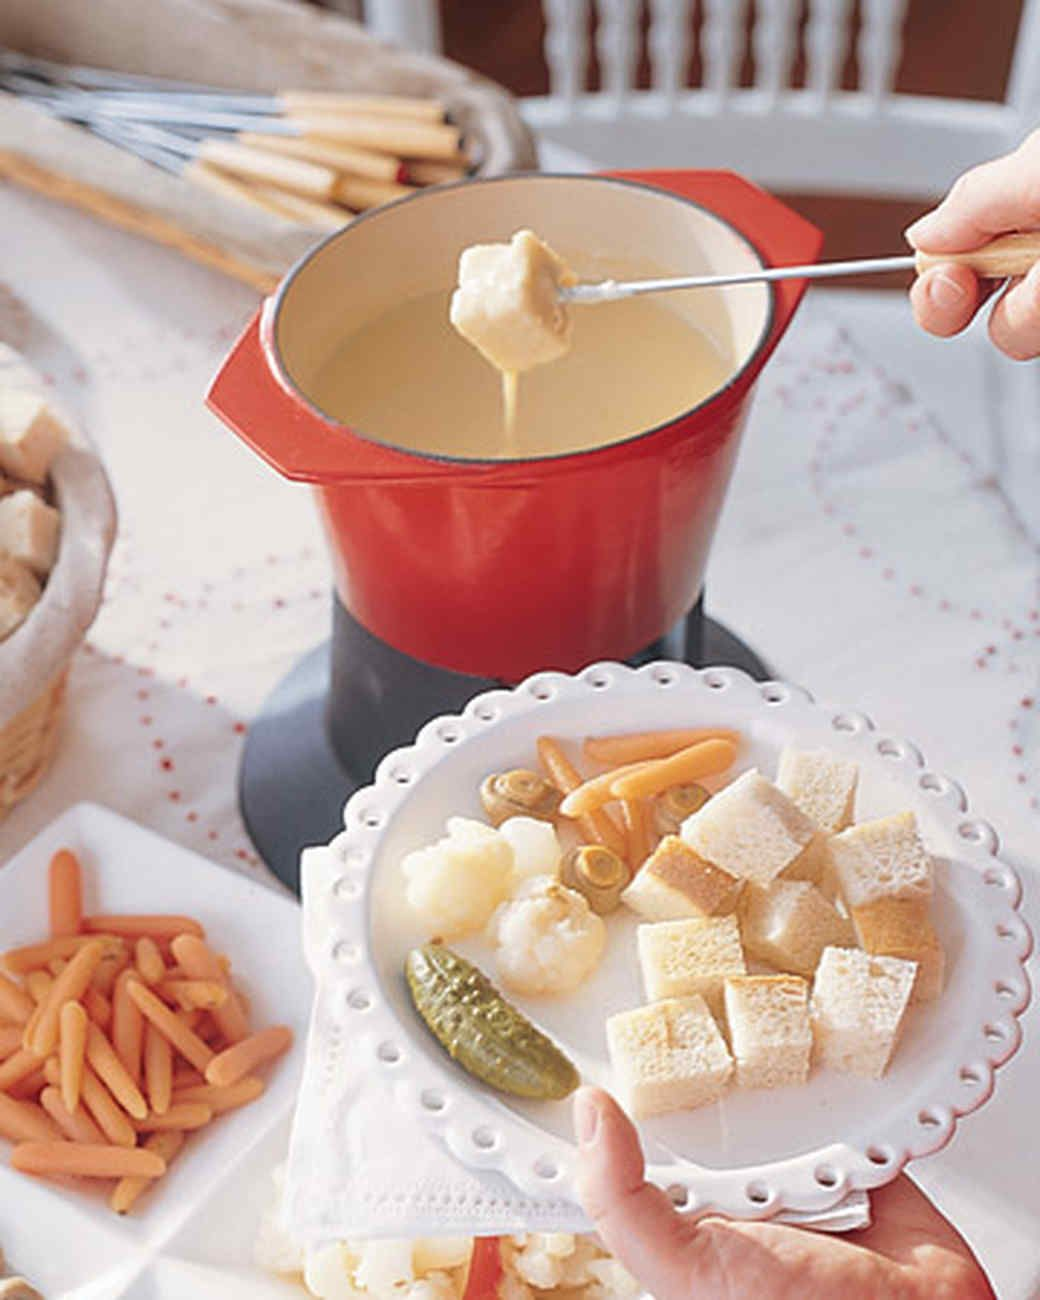 Manchego Perfect Fondue Recipe From Food Network Kitchen Via Food Network Food Network Recipes Fondue Recipes Fondue Recipes Cheese